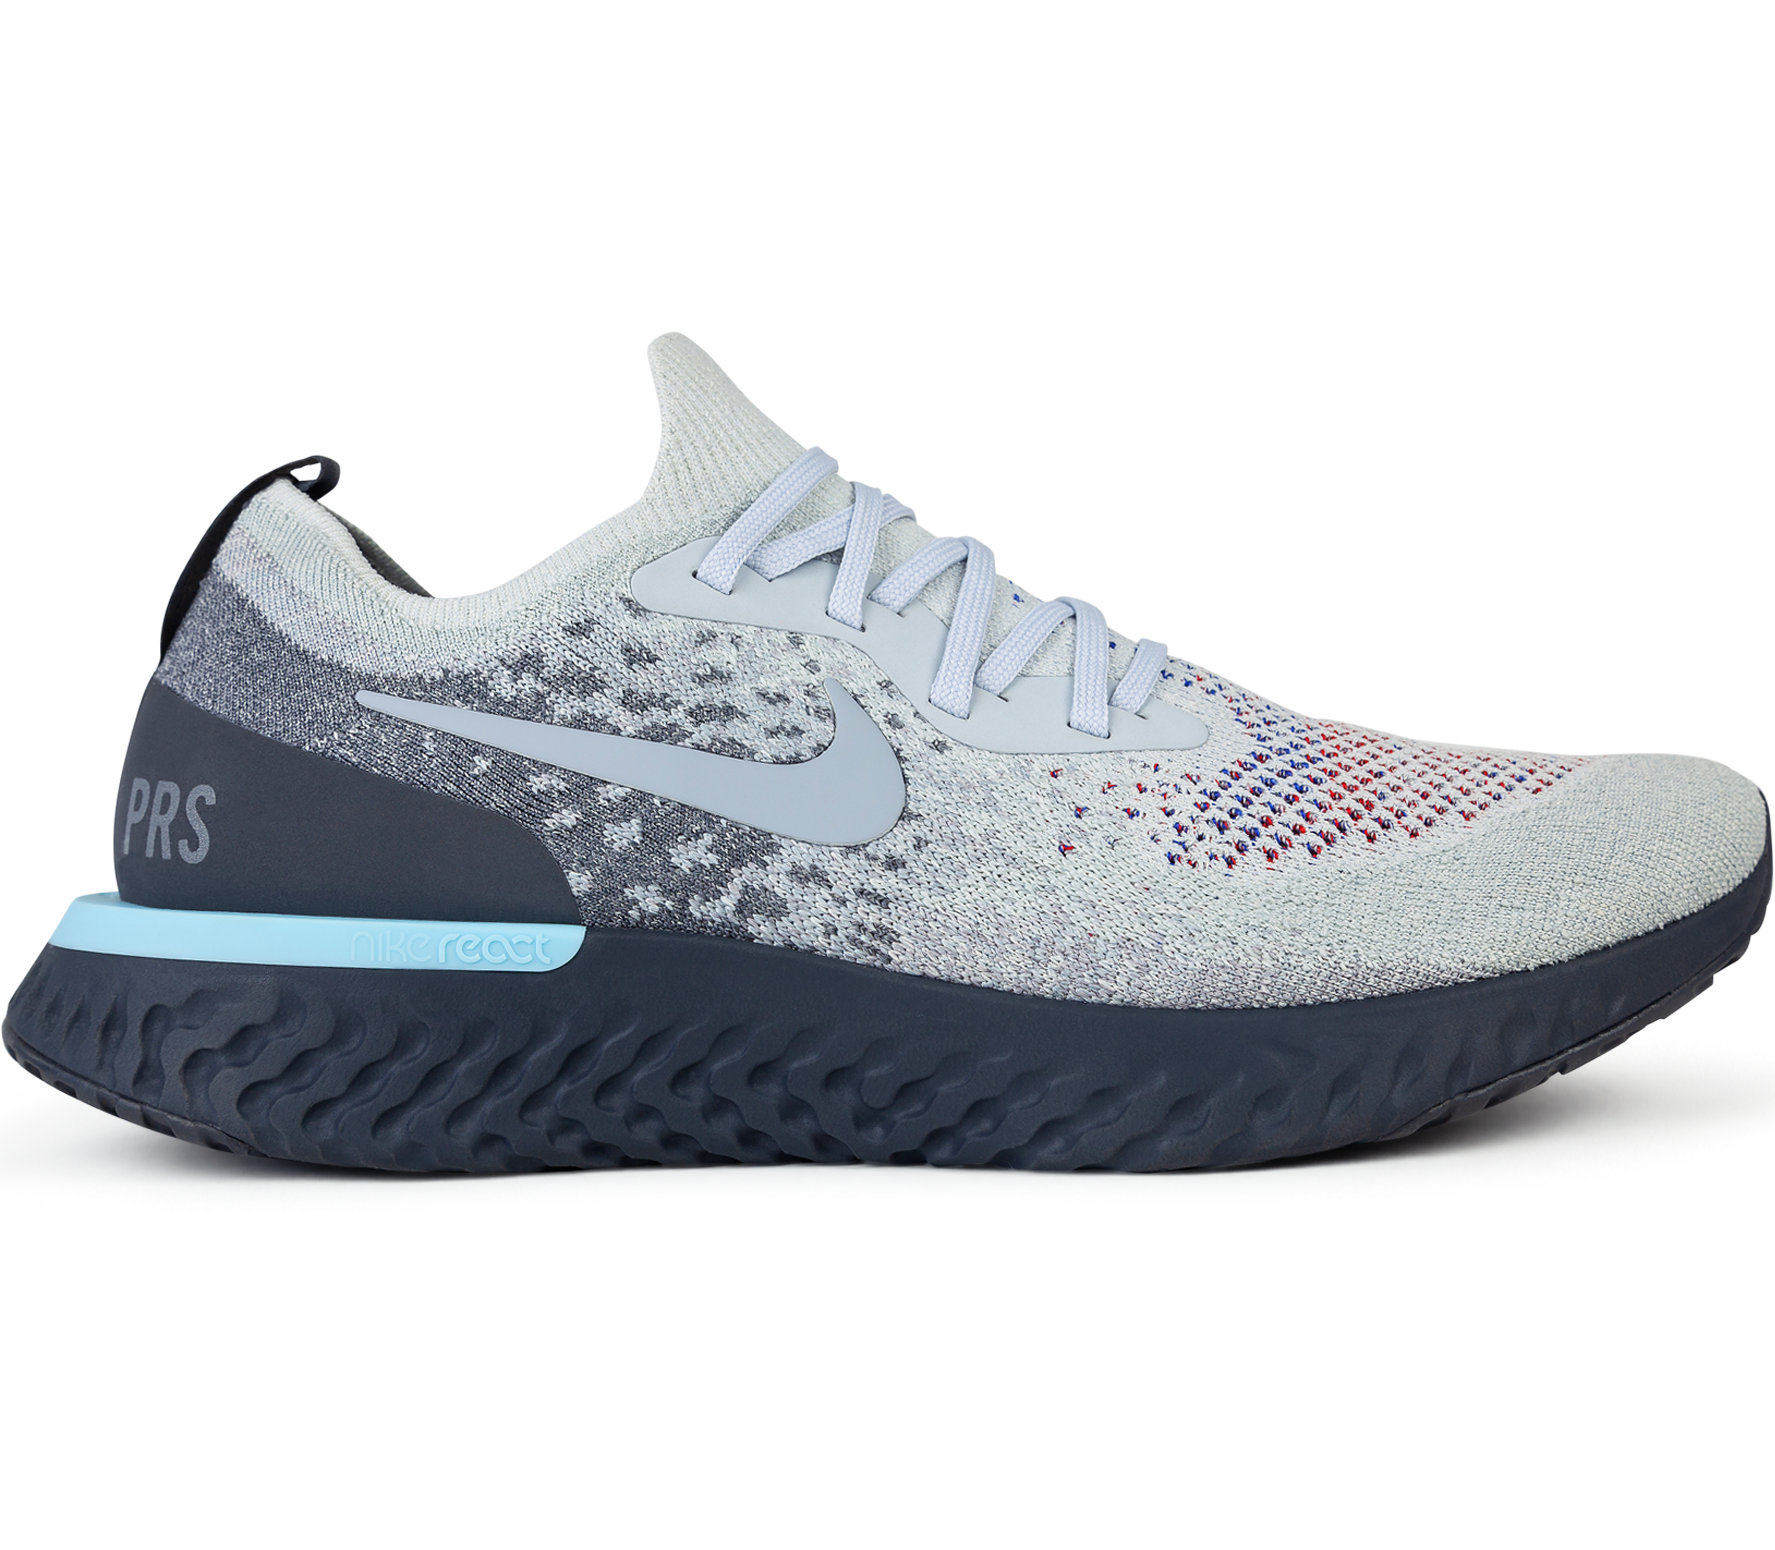 9821d687f90 Nike - Epic React Flyknit We  PARIS  men s running shoes (grey ...